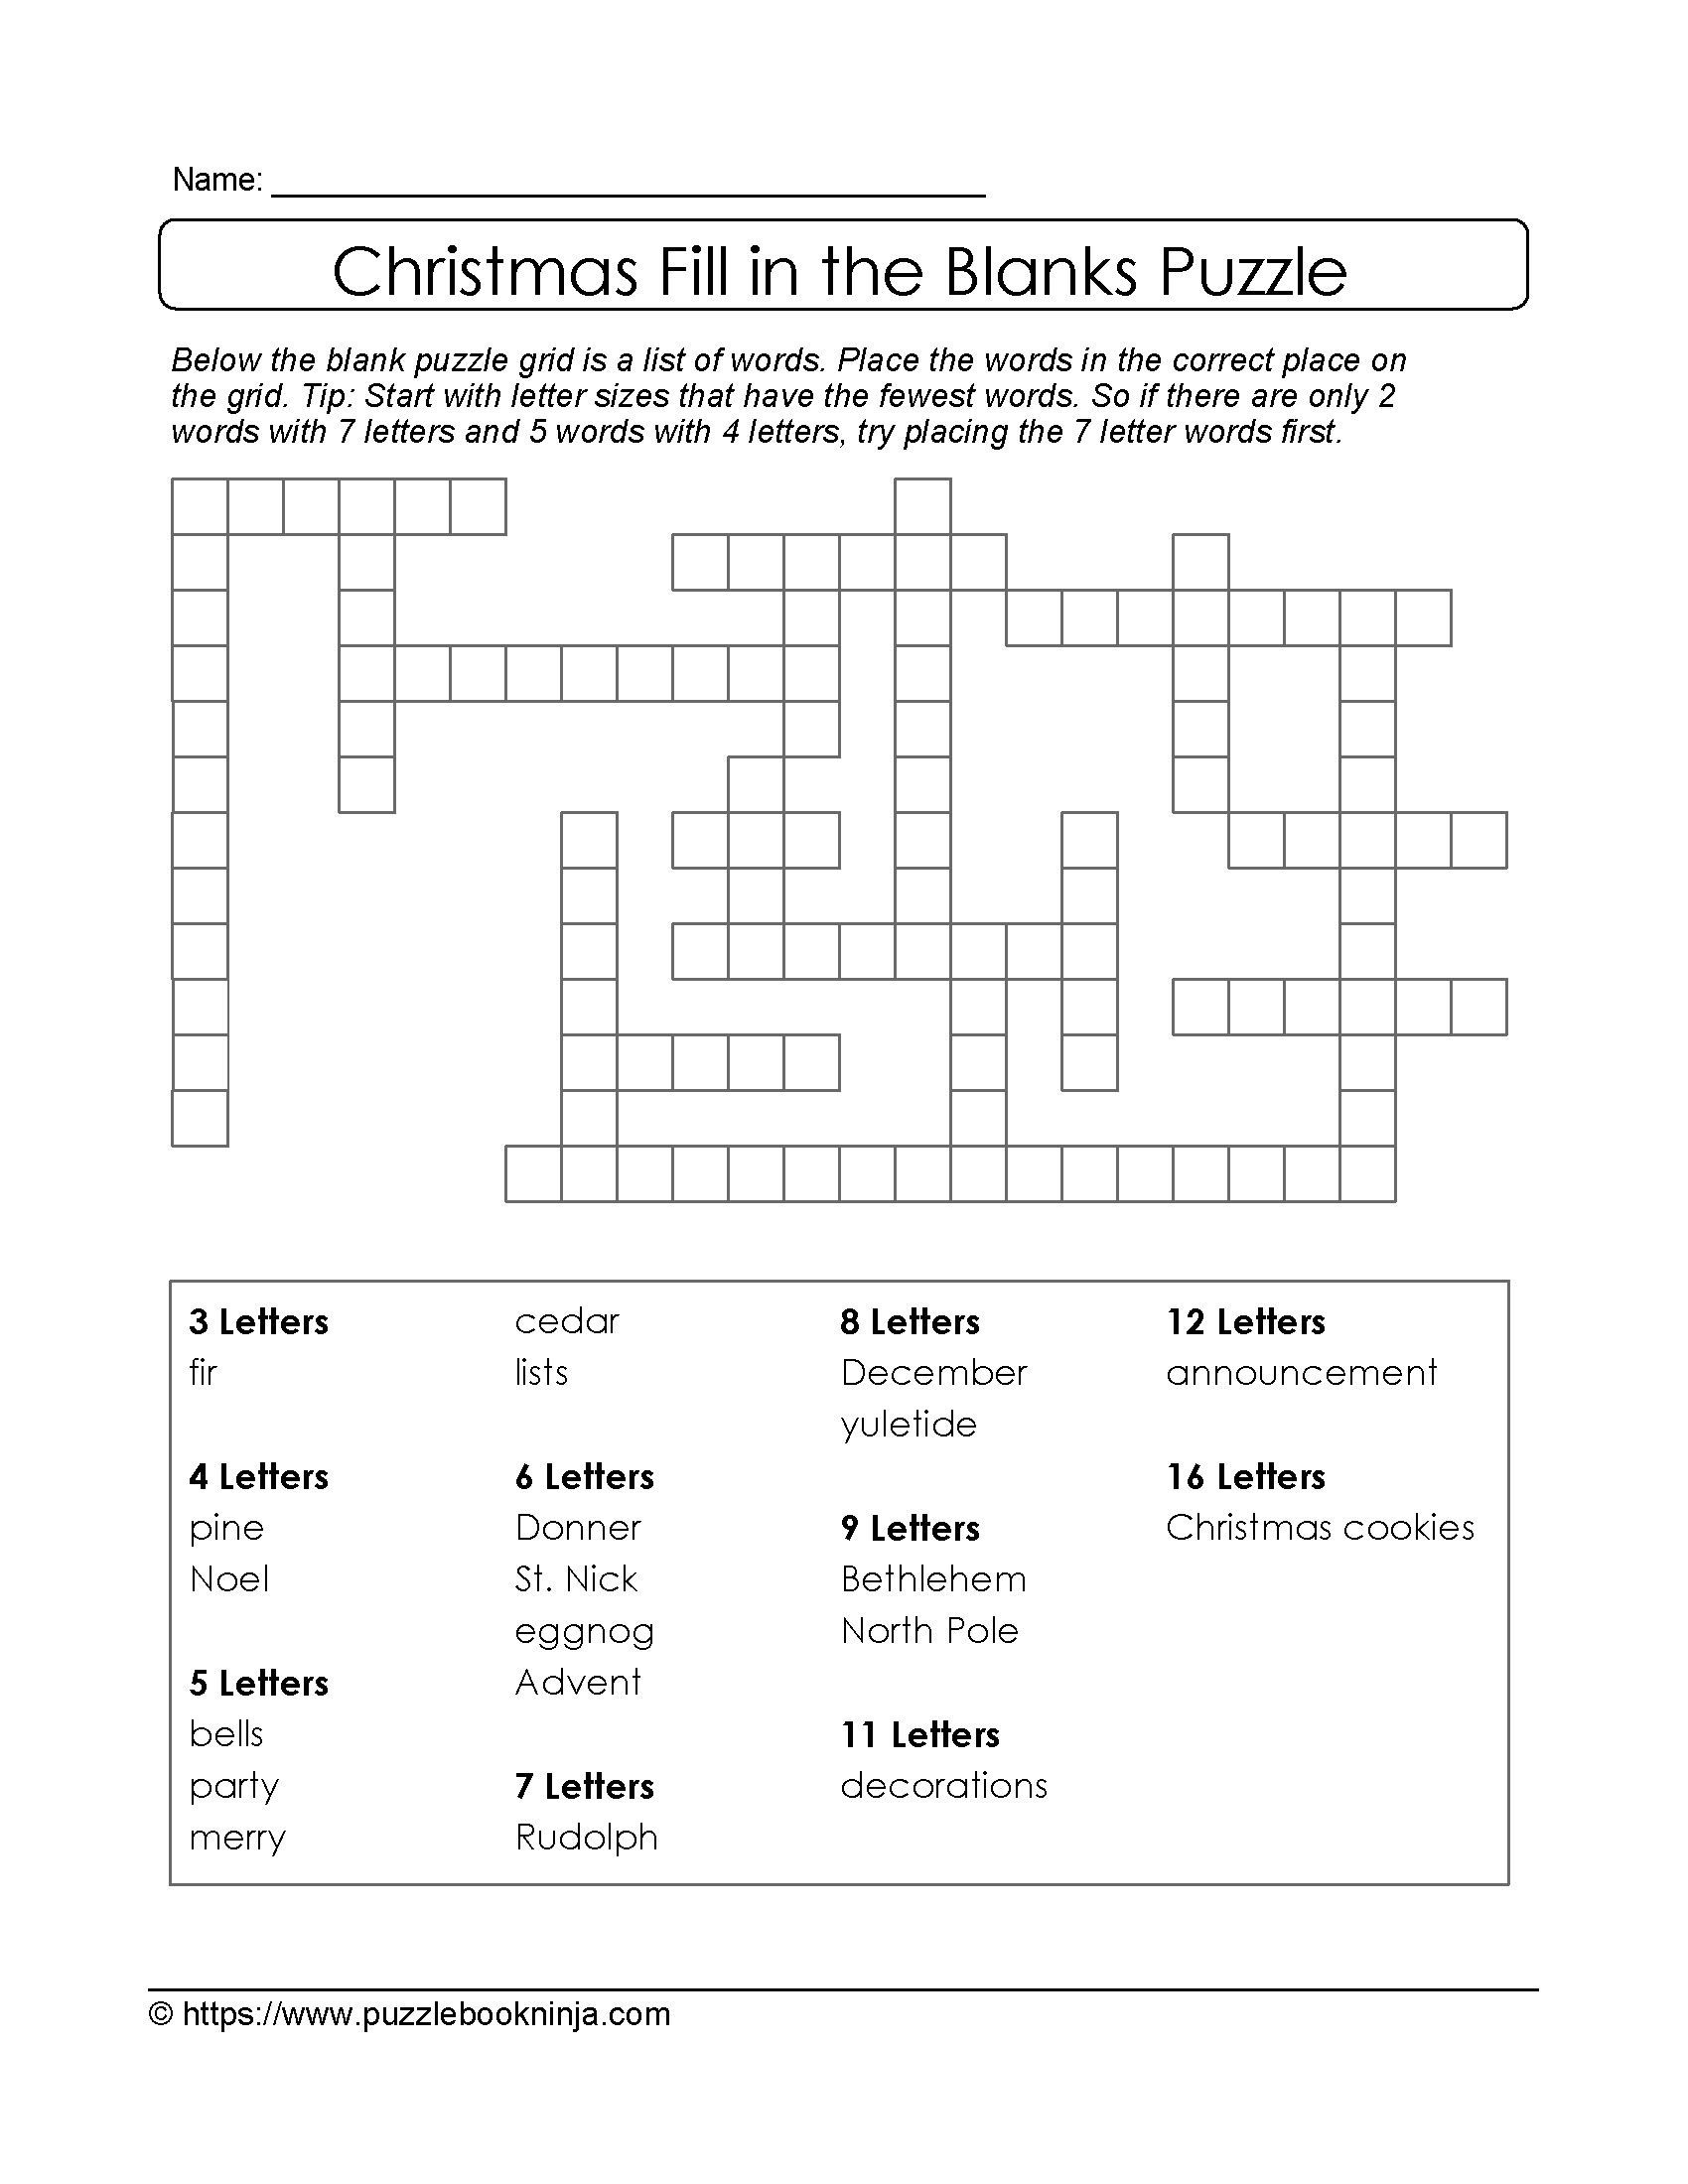 Printable Puzzles For 10 Year Olds Printable Crossword Puzzles Fill In Puzzles Printable Crossword Puzzles Printable Puzzles [ 2200 x 1700 Pixel ]